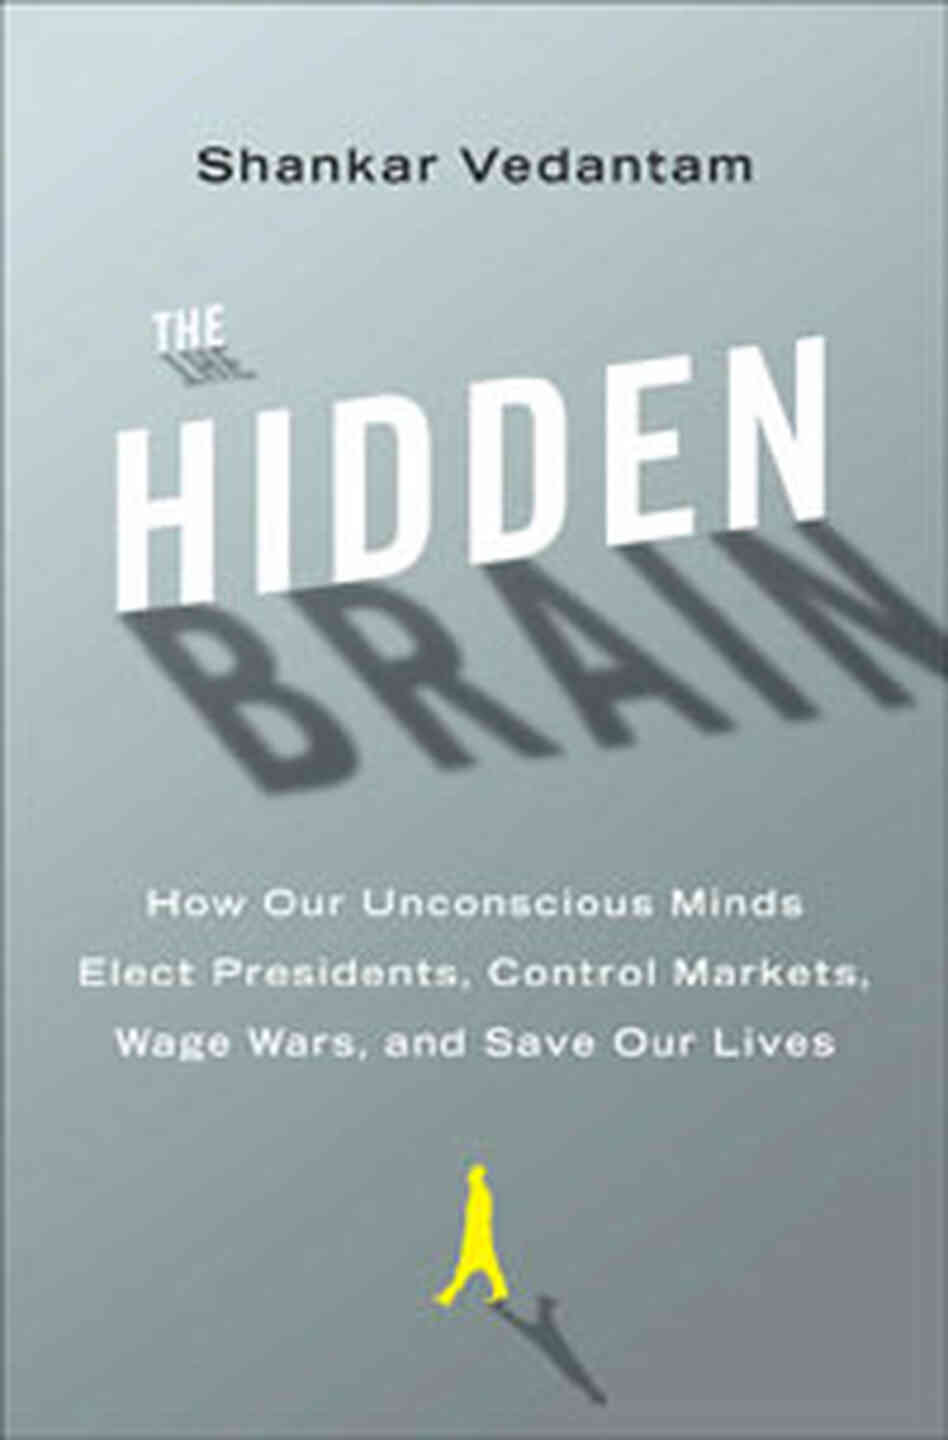 'The Hidden Brain' book cover